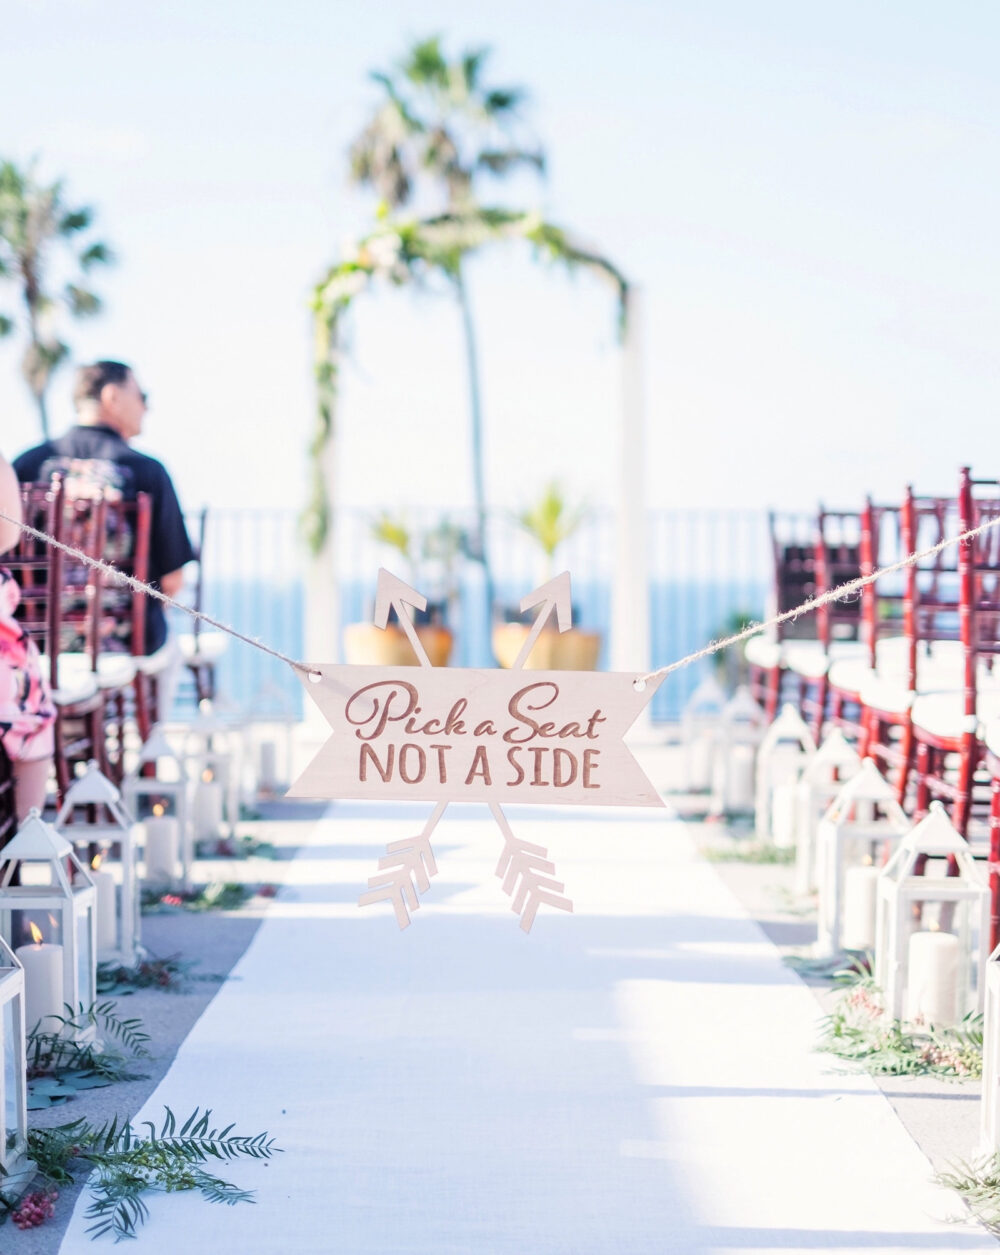 Wedding Sign For Aisle Pick A Seat Not Side Ceremony - Decorations in Rustic Boho Arrow Design | Item Aps100